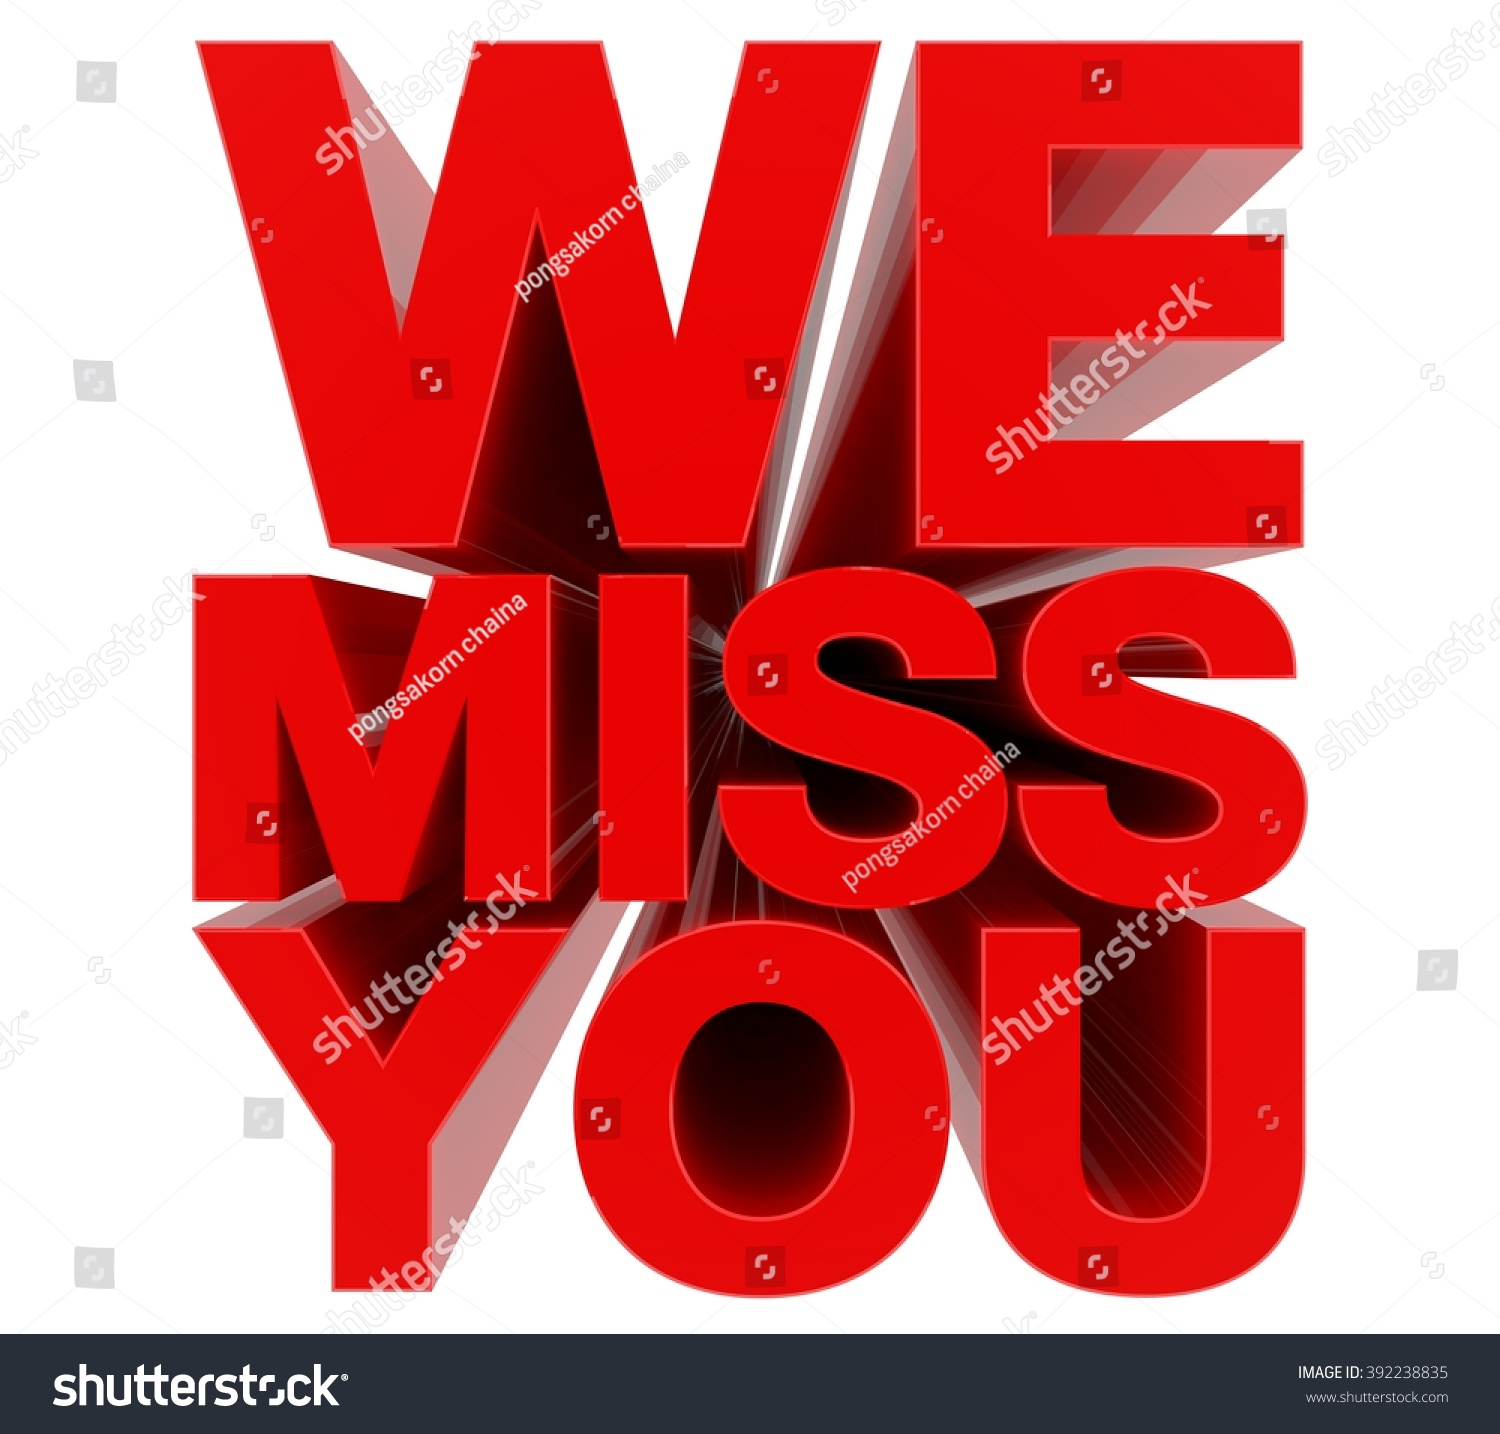 We Miss You Red Word On Stock Illustration 392238835 - Shutterstock